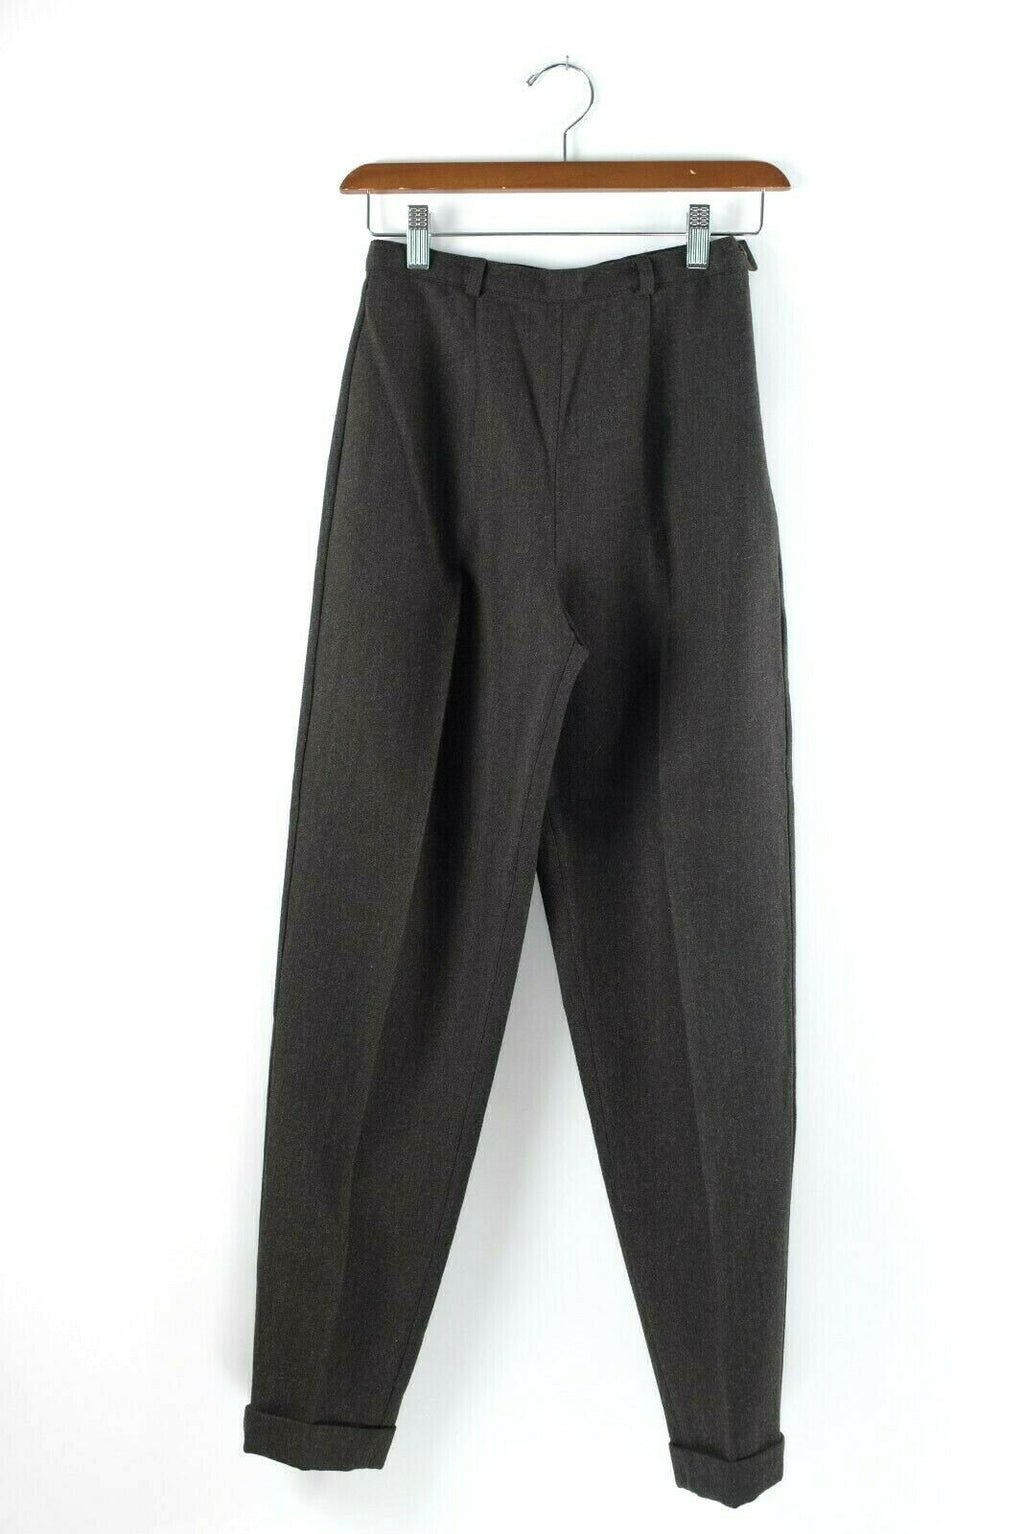 Max Mara Womens Size 4 Small Brown Trousers Dark Side Zip Slim Vintage Pants